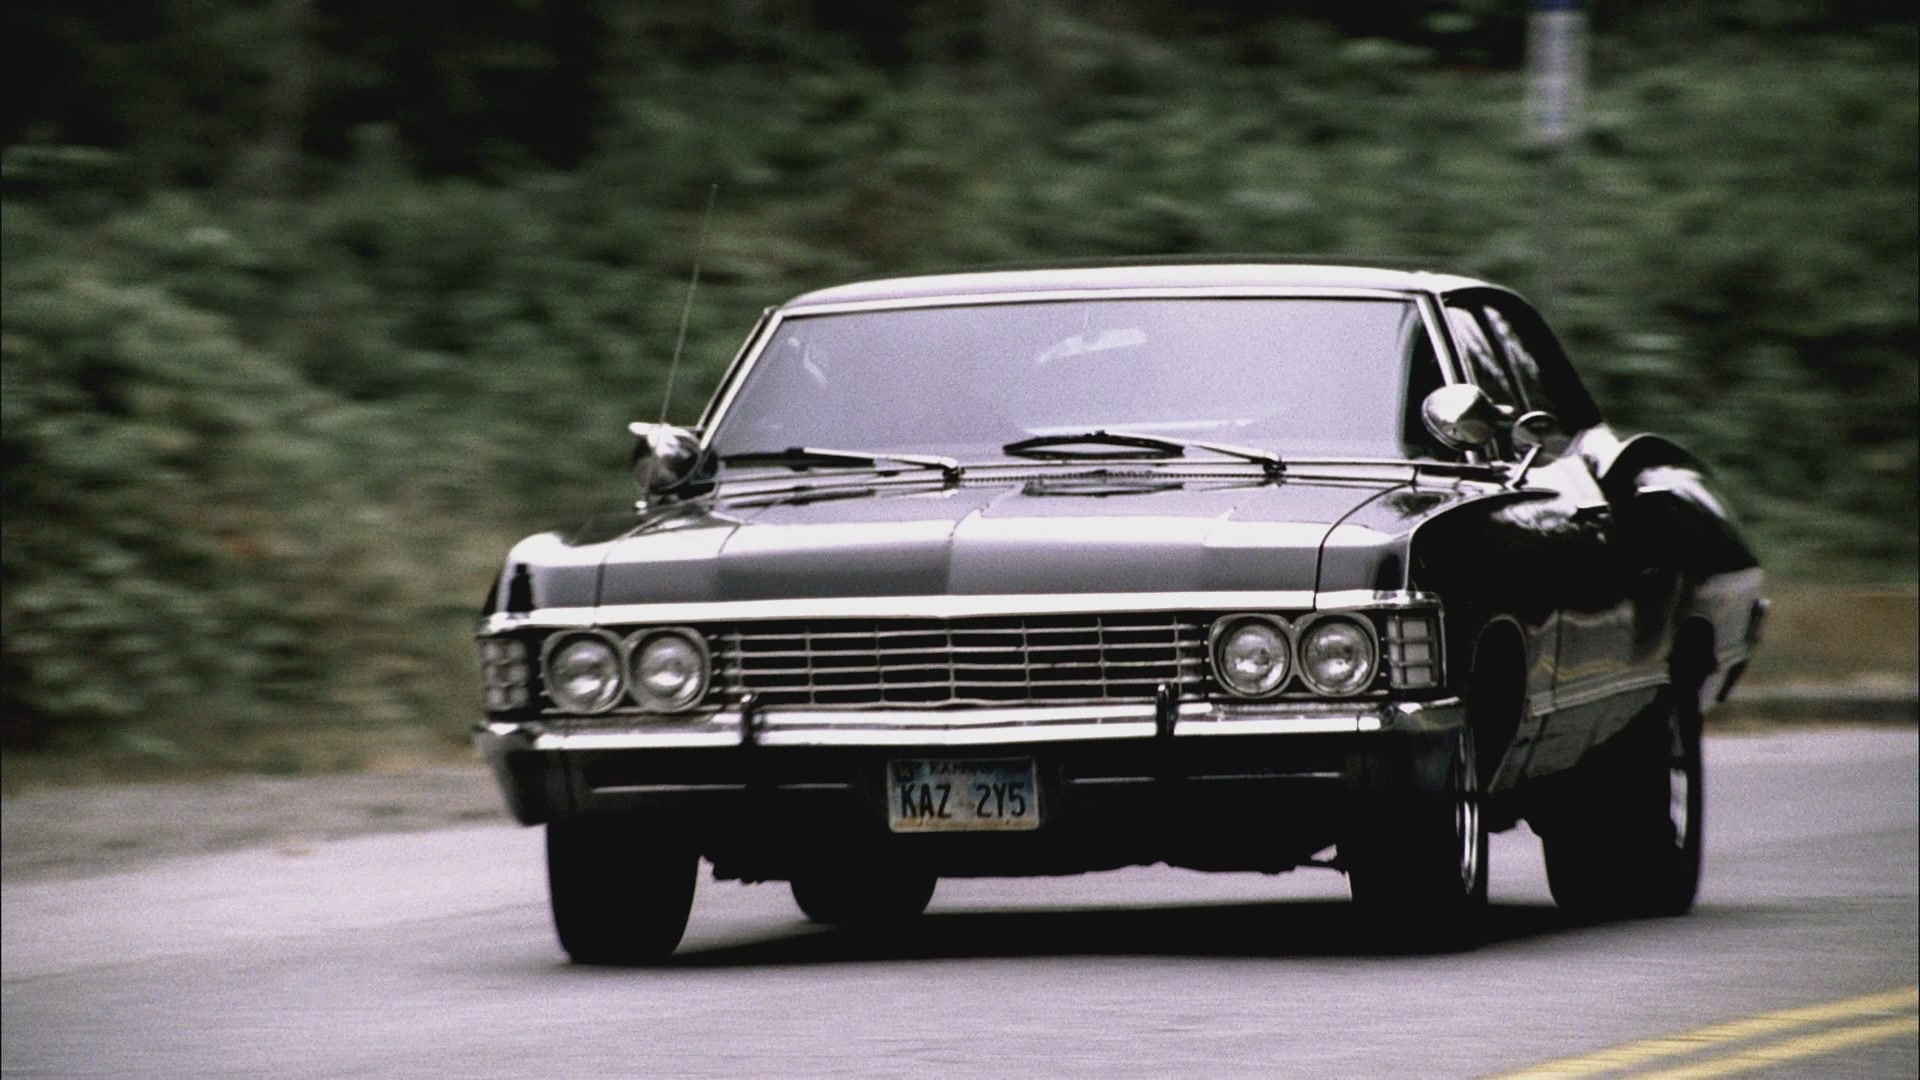 The winchester family business memorable moments - Supernatural car pics ...